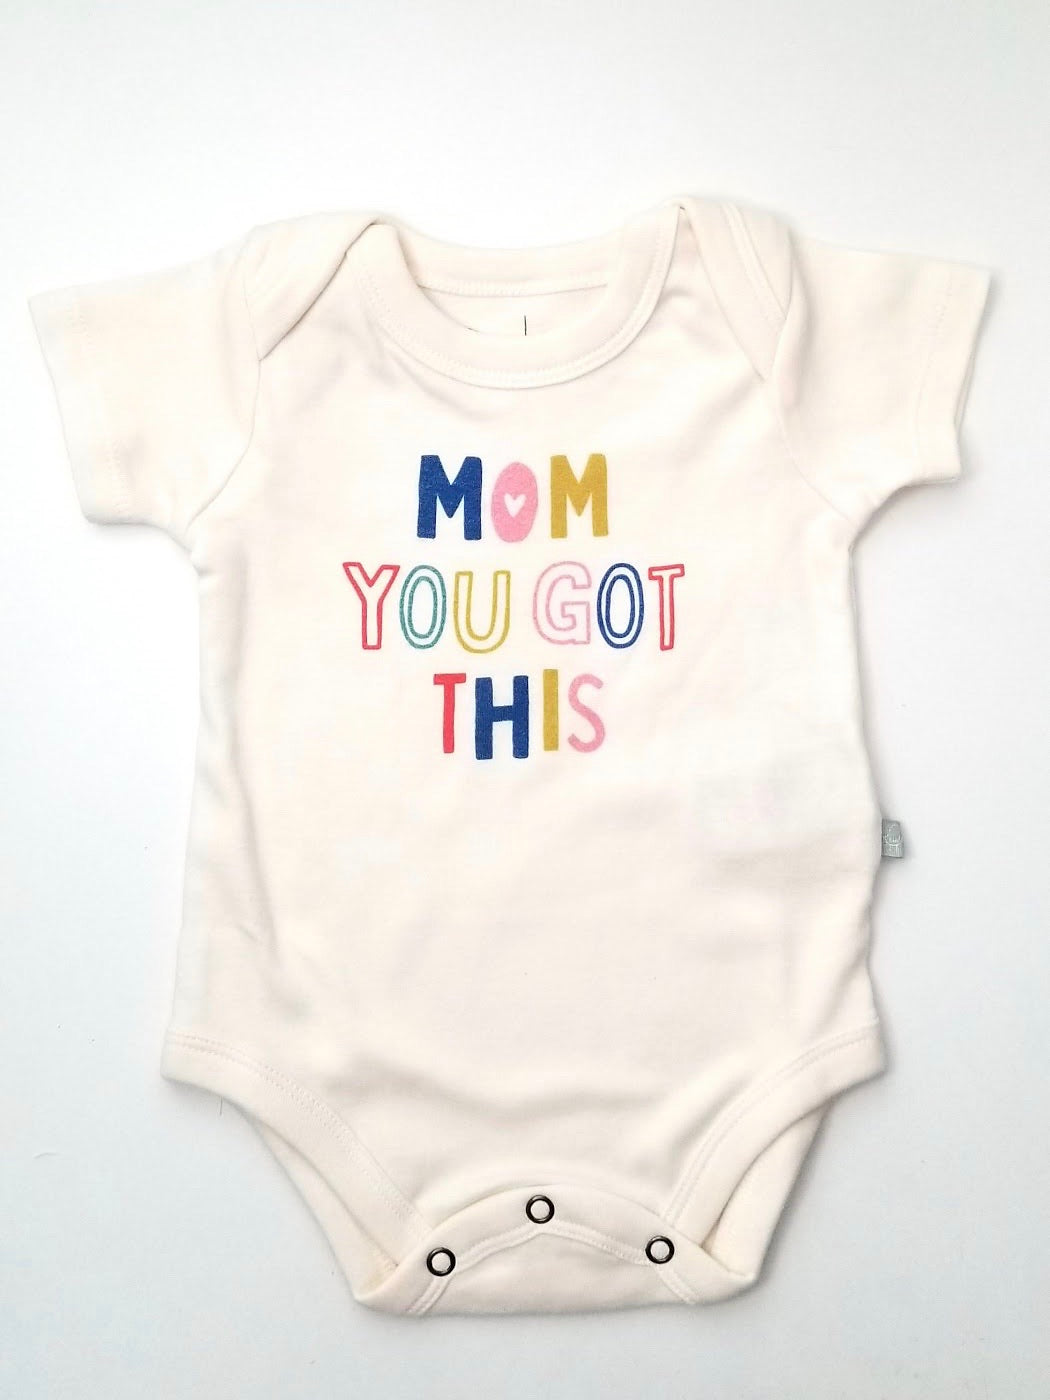 Mom you got this Bodysuit